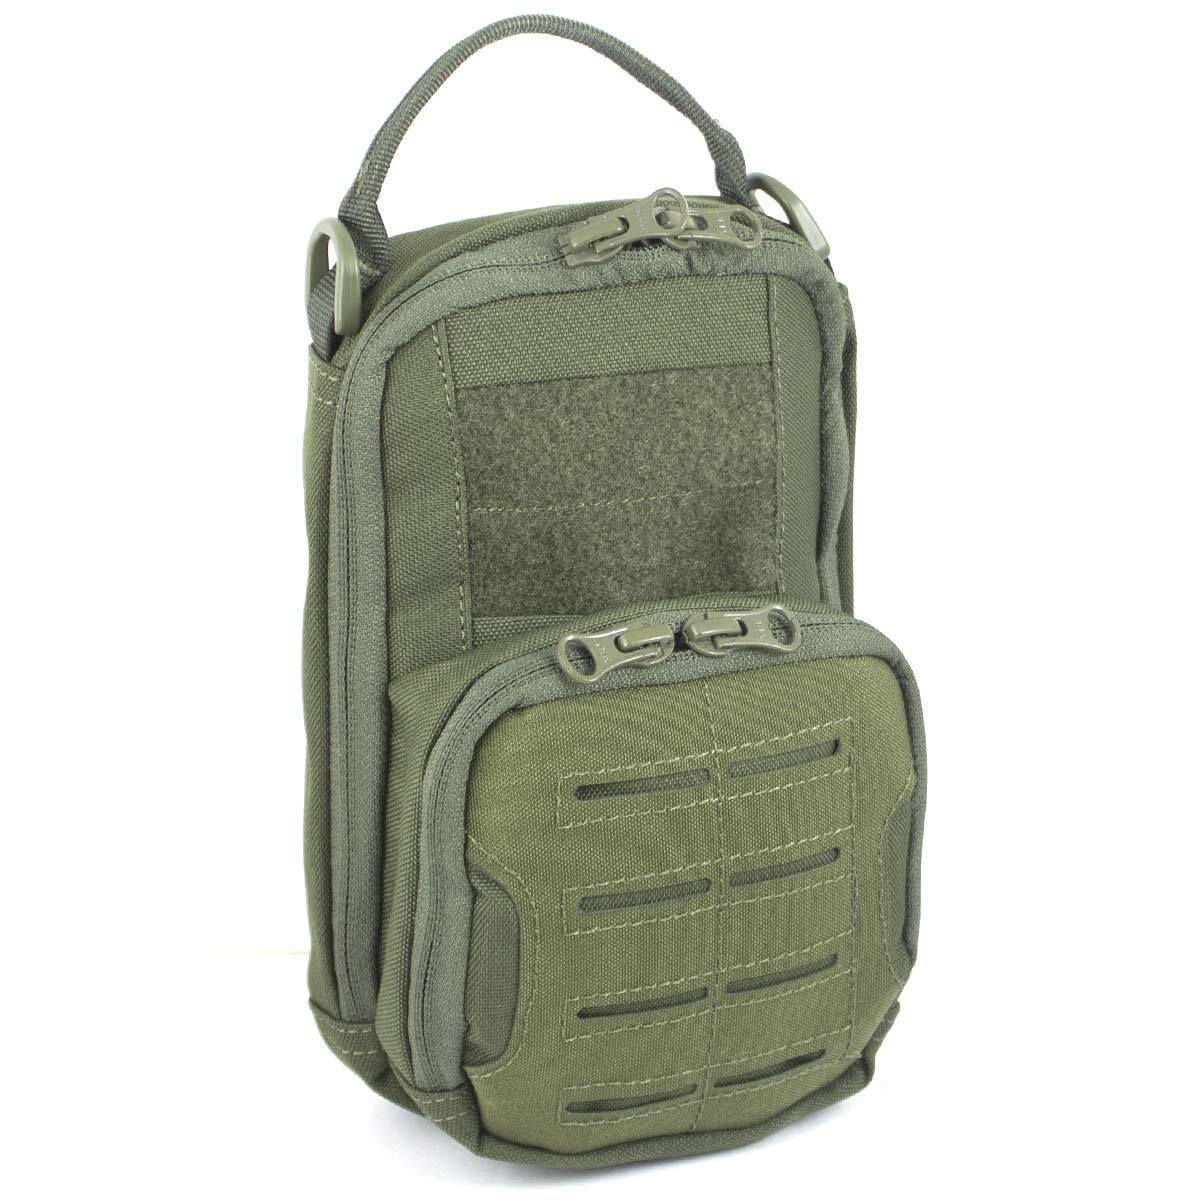 Bulldog EDC Utility Pouch Olive Green | Bulldog Tactical Gear